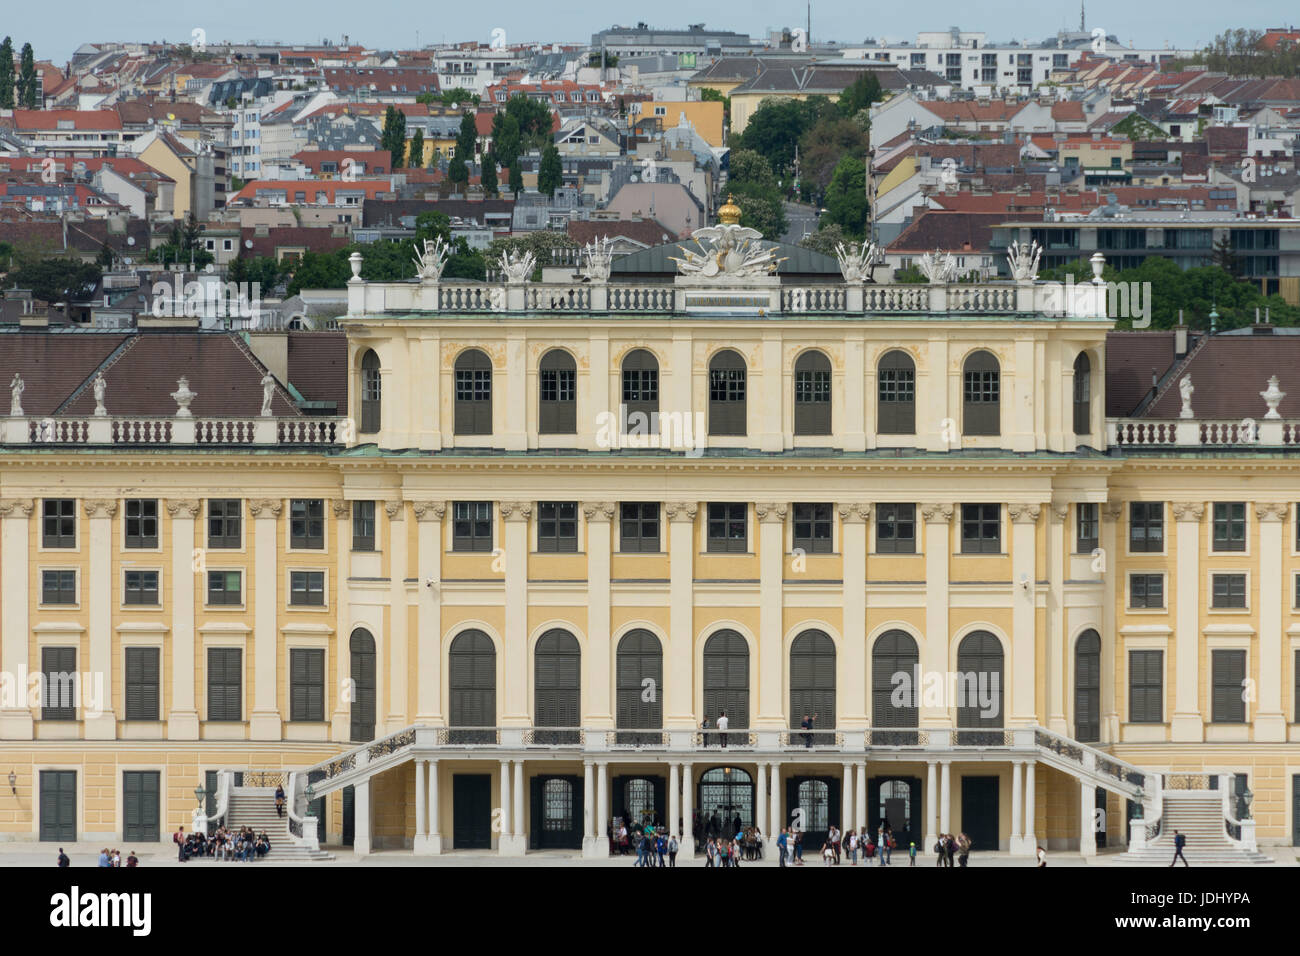 Austria. Vienna. Tele photo of  Schönbrunn Palace - Stock Image